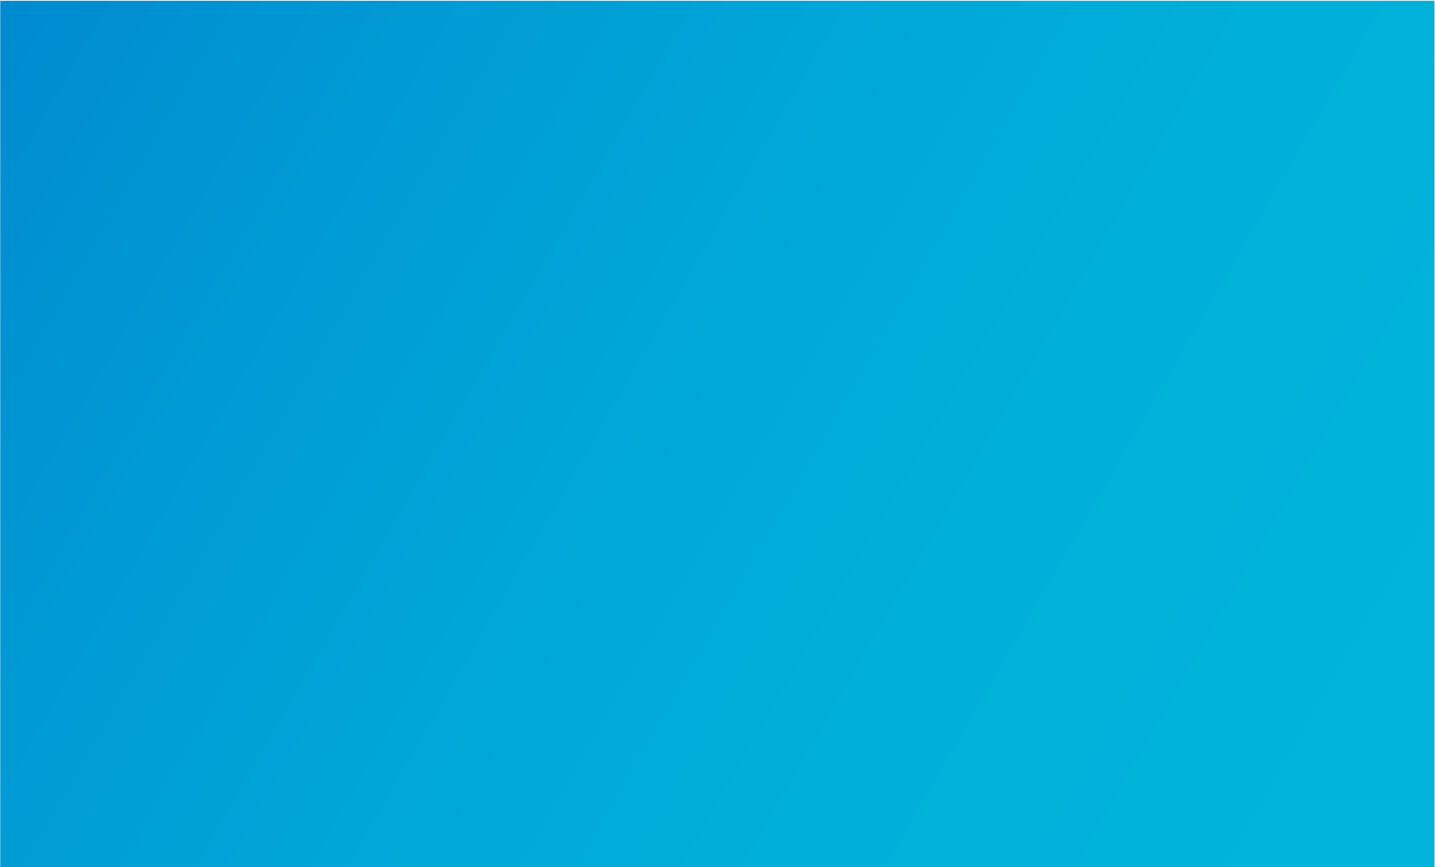 Gradient_LightBlue